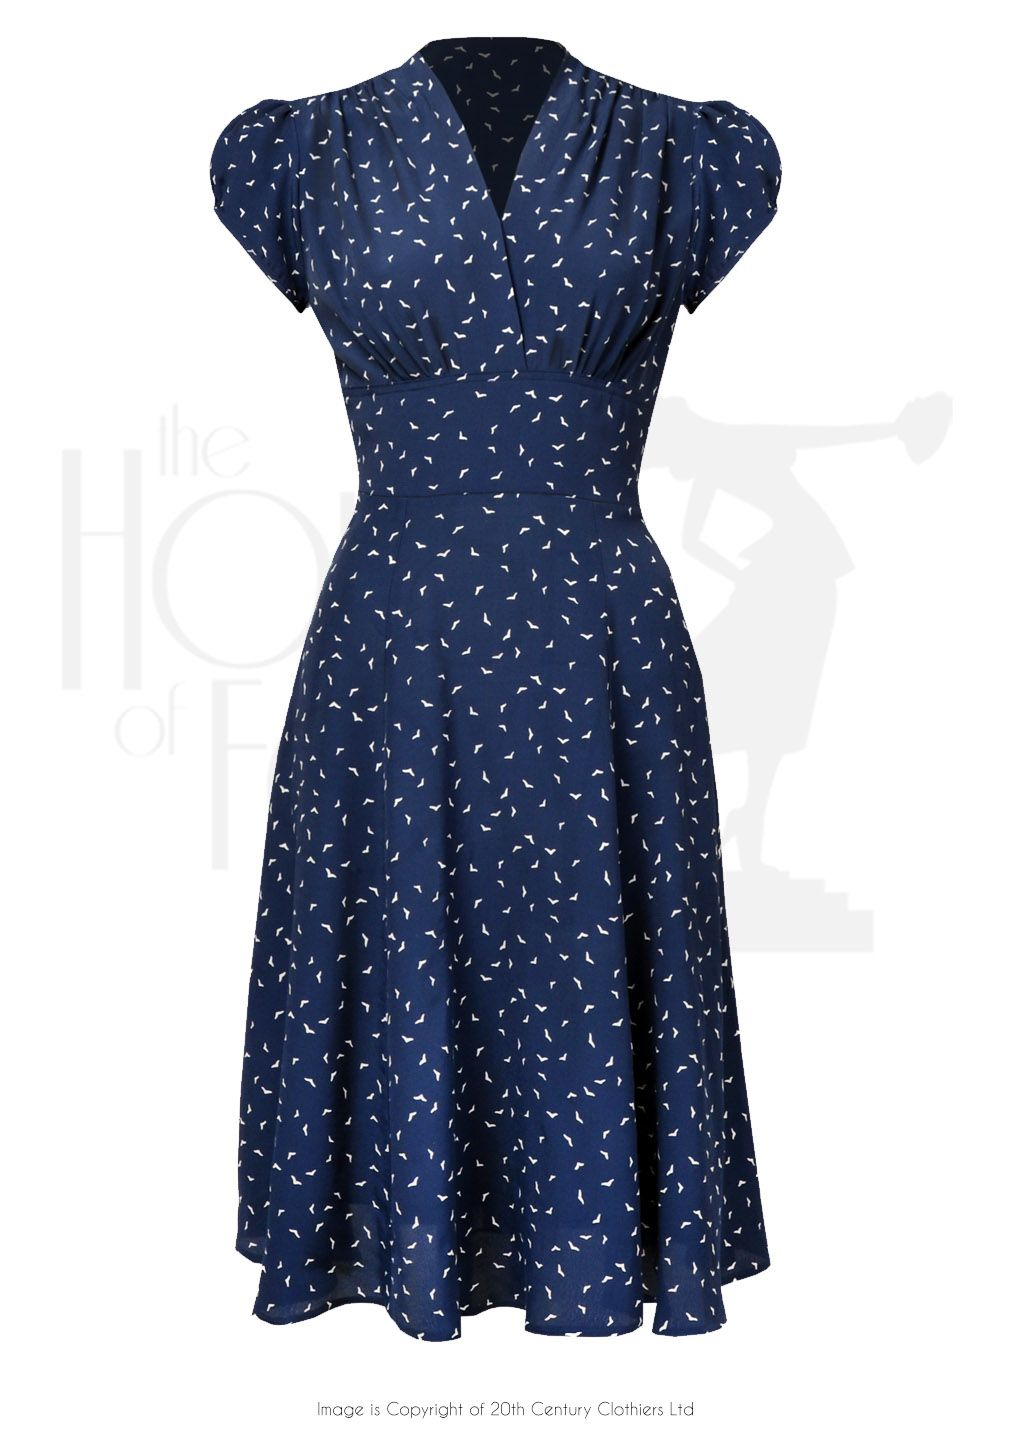 1930s 40s Ava Tea Dress in Starling Crepe - House of Foxy | Dance ...